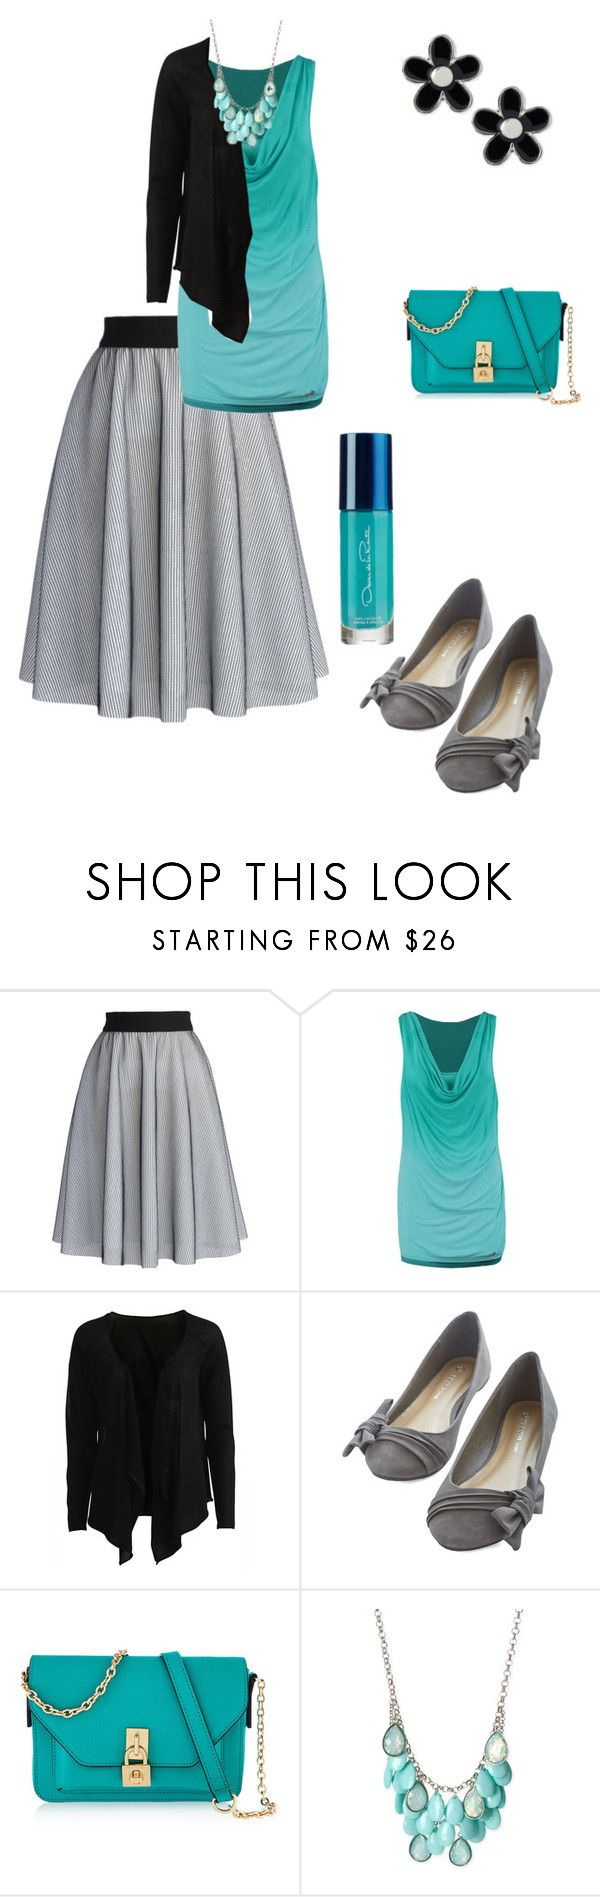 """""""Sunday church outfit"""" by chellebelle28 ❤ liked on Polyvore featuring Chicwish, Khujo, Object Collectors Item, Henri Bendel and Marc by Marc Jacobs"""